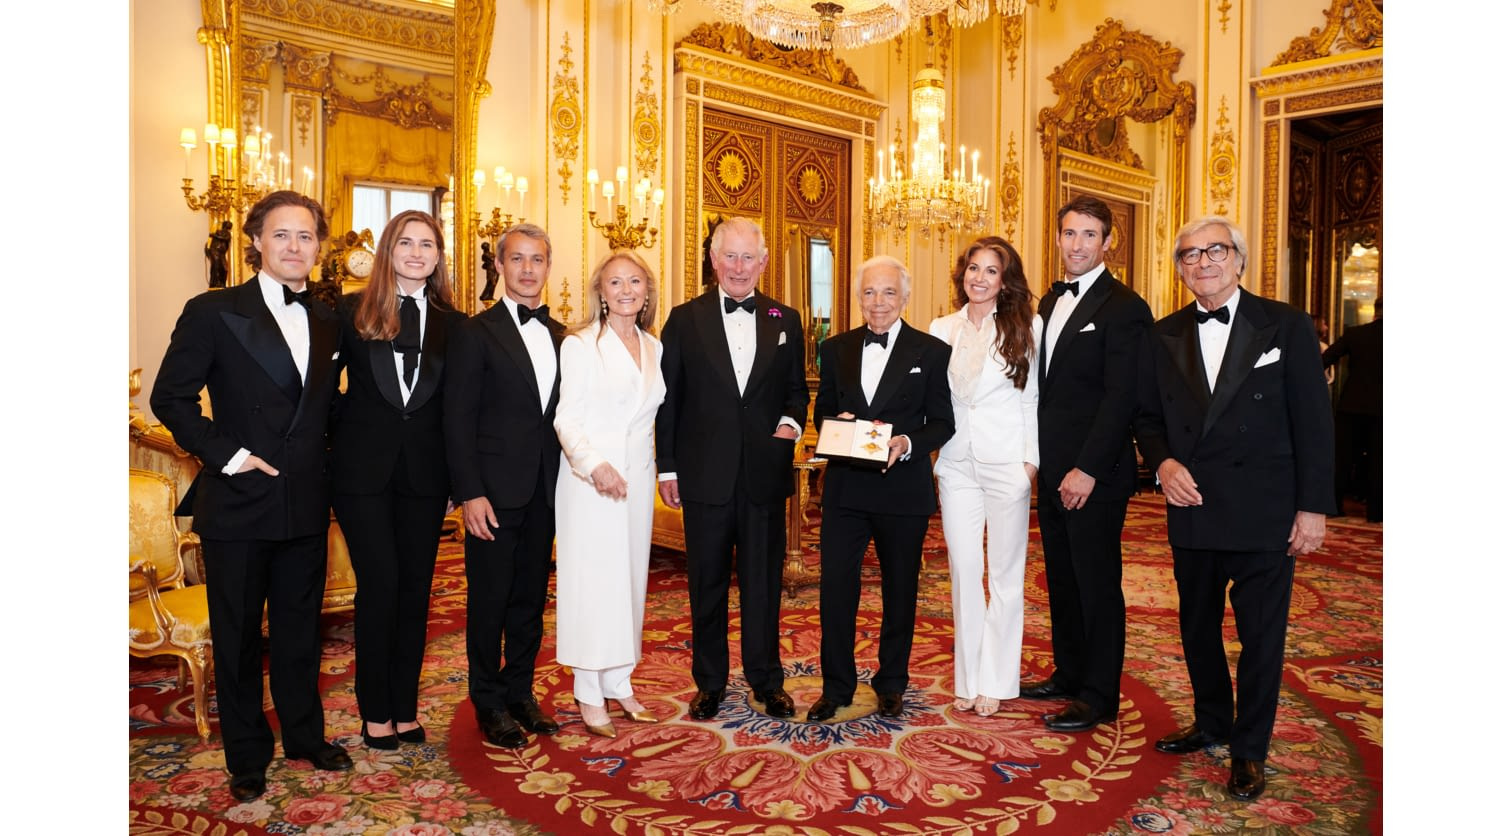 Ralph Lauren Family _KBE _- photo credit Chris Allerton.jpg